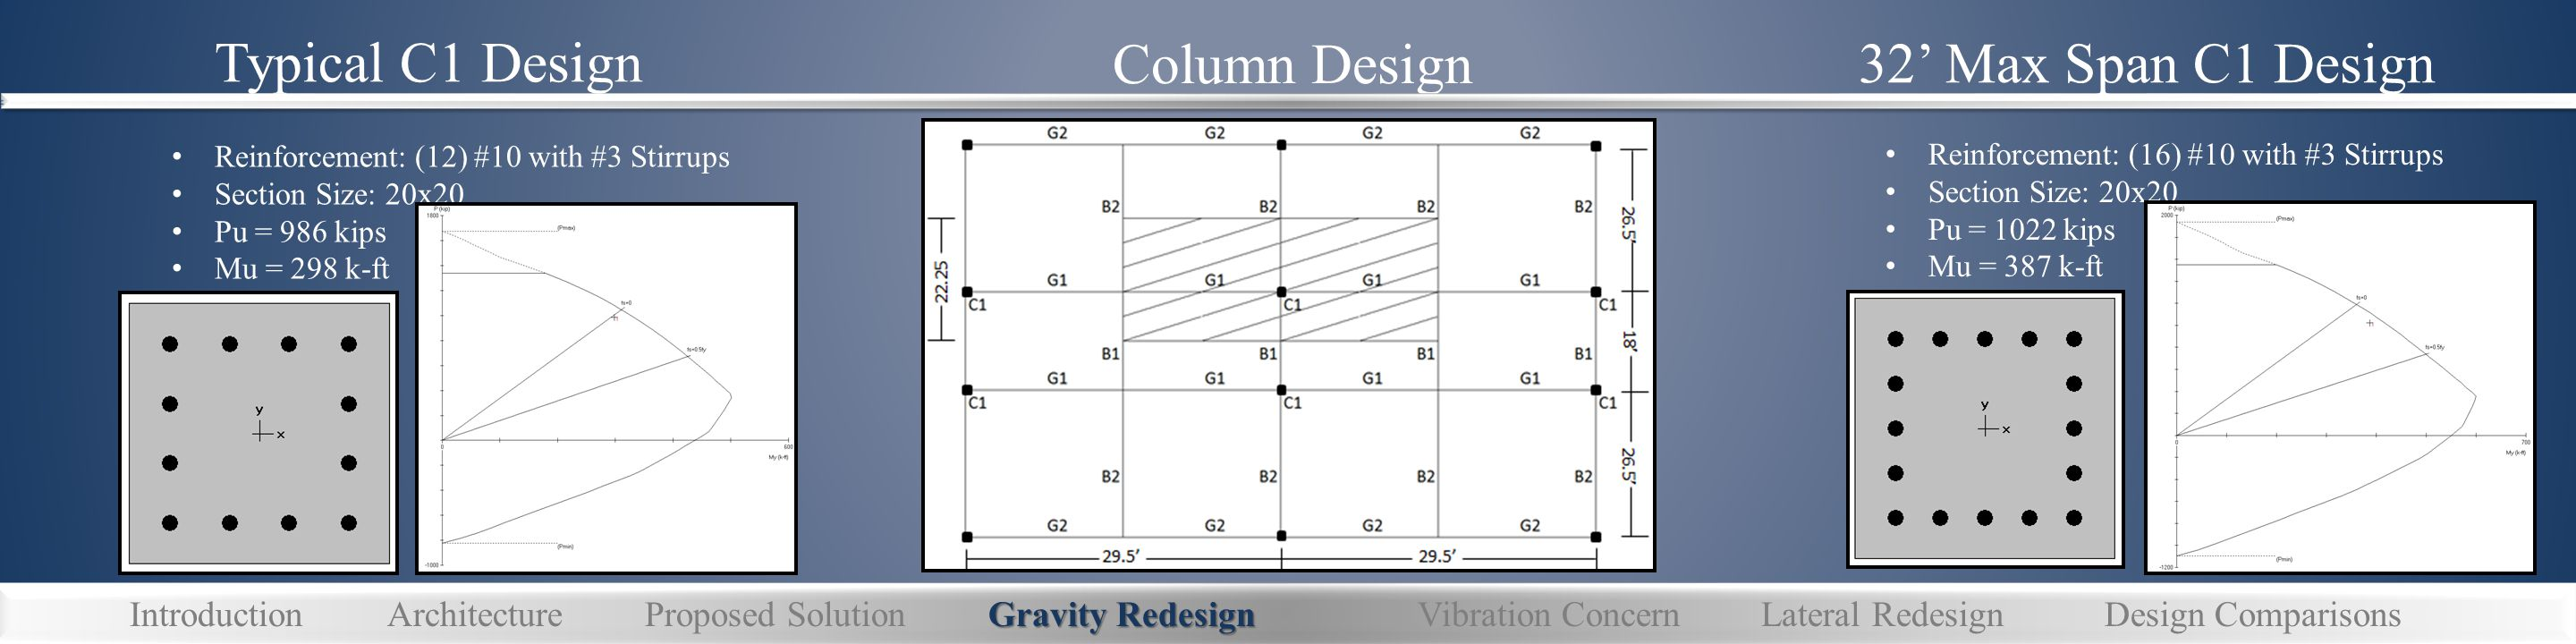 Column Design Typical C1 Design 32' Max Span C1 Design Reinforcement: (12) #10 with #3 Stirrups Section Size: 20x20 Pu = 986 kips Mu = 298 k-ft Reinforcement: (16) #10 with #3 Stirrups Section Size: 20x20 Pu = 1022 kips Mu = 387 k-ft Gravity Redesign IntroductionArchitectureProposed SolutionGravity RedesignVibration ConcernLateral RedesignDesign Comparisons Conclusion